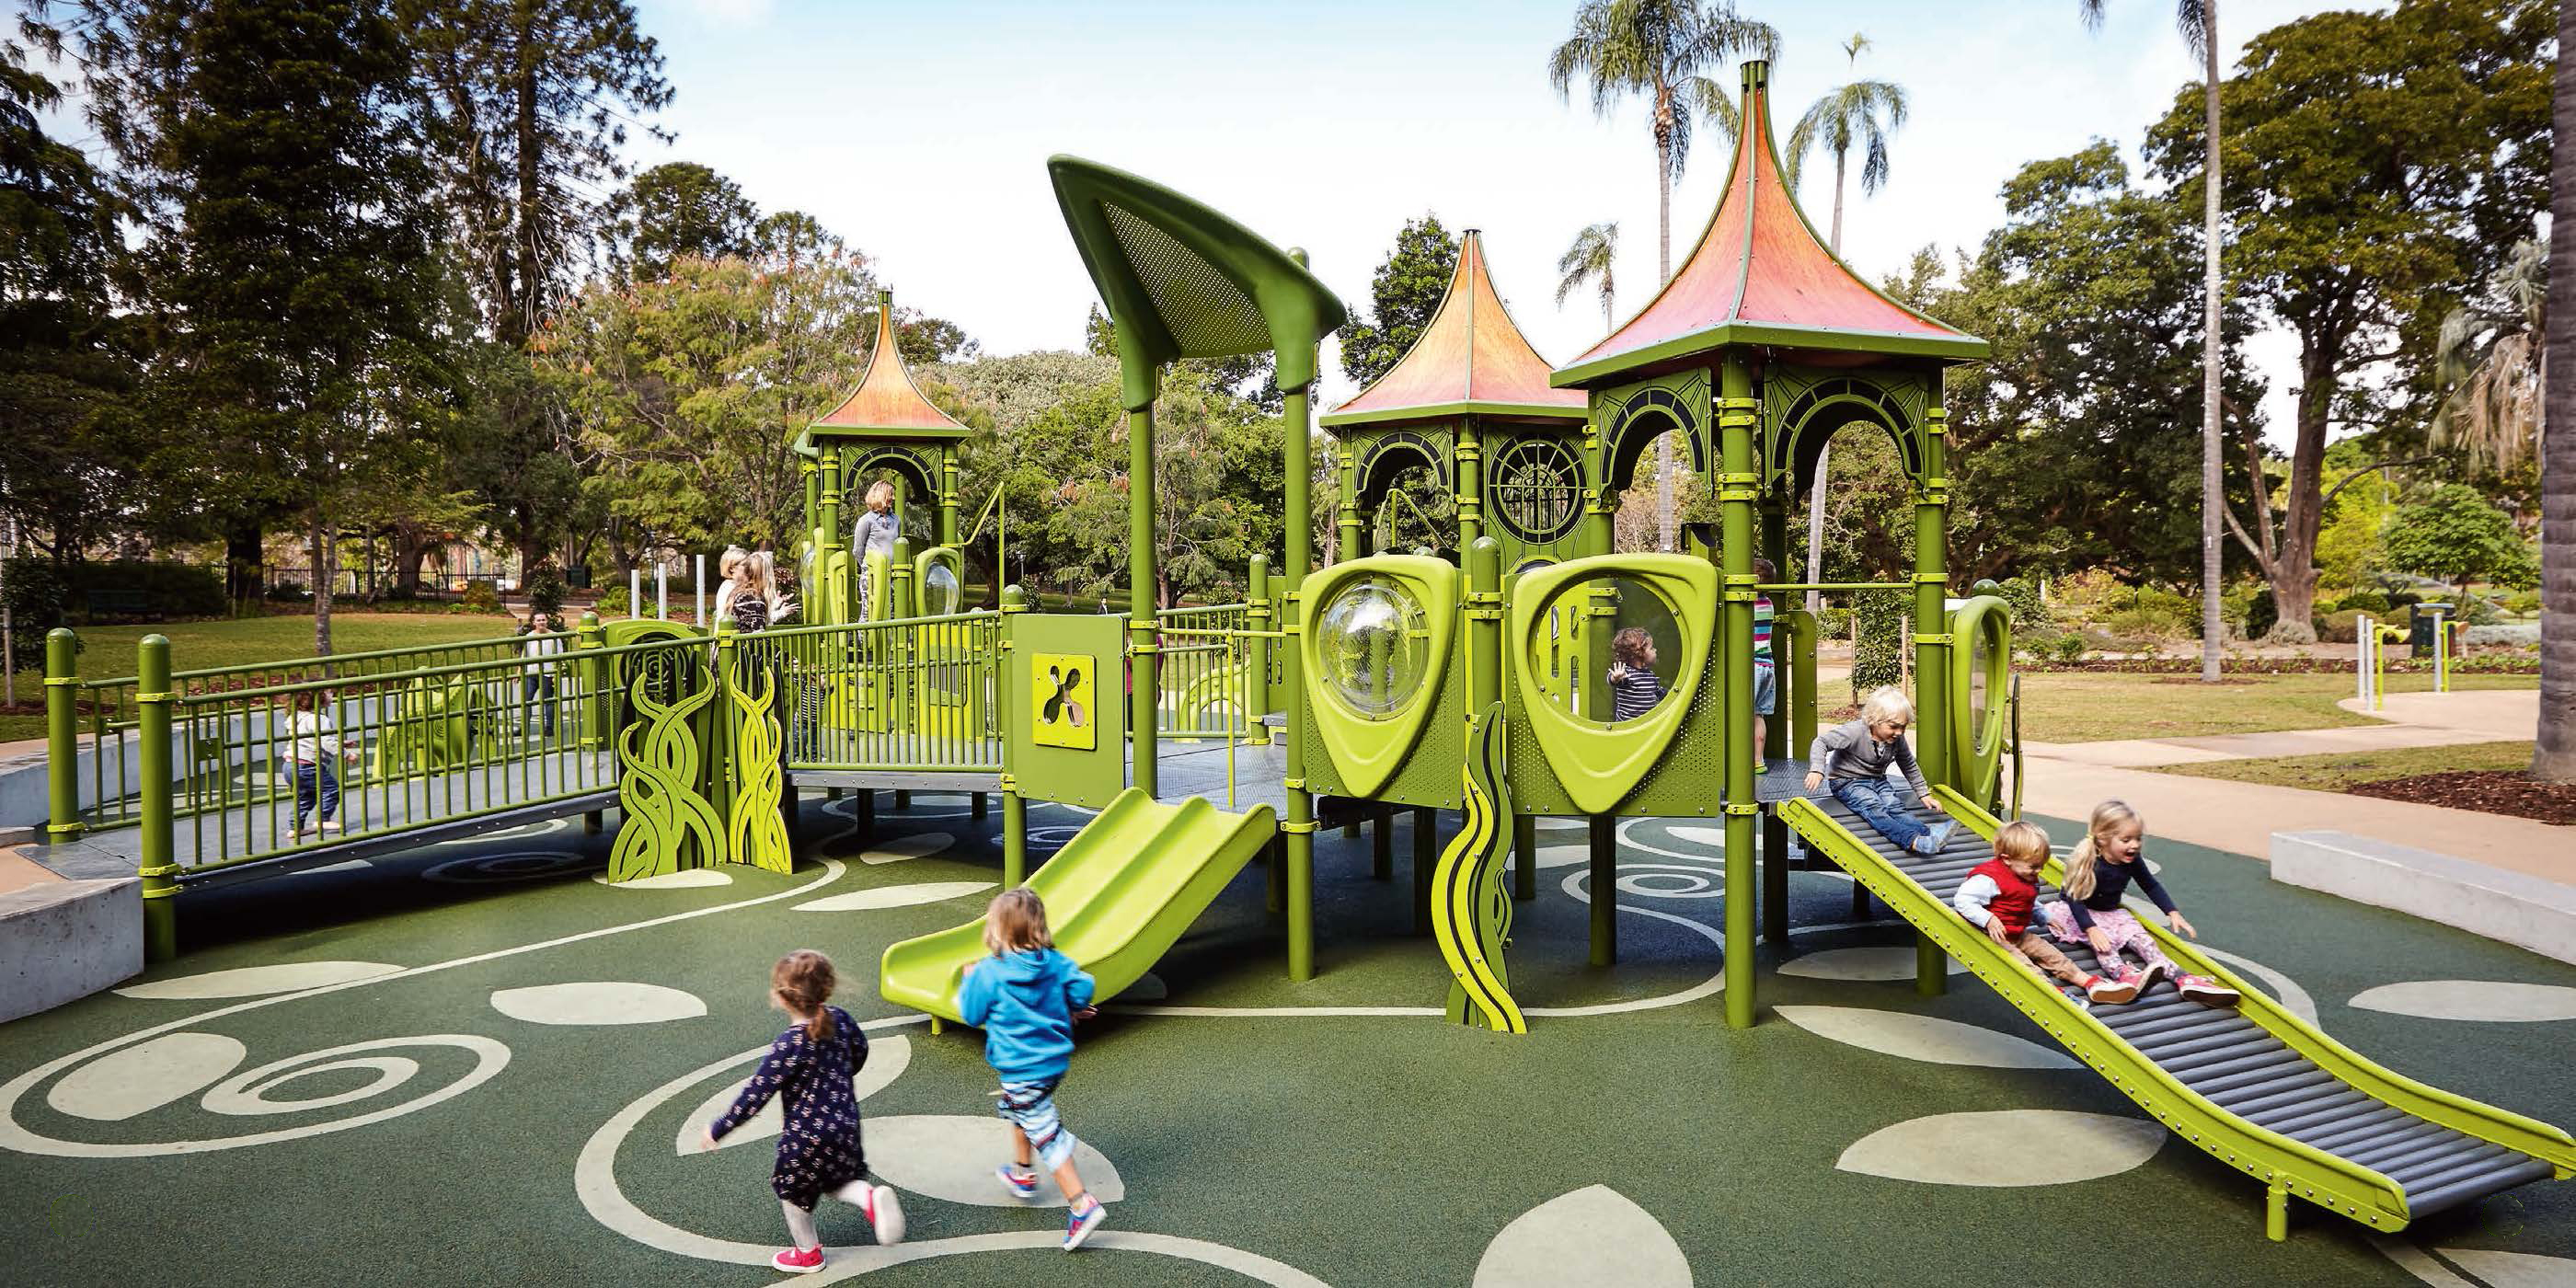 Playground best place to spend time and get relaxation for Playground equipment ideas